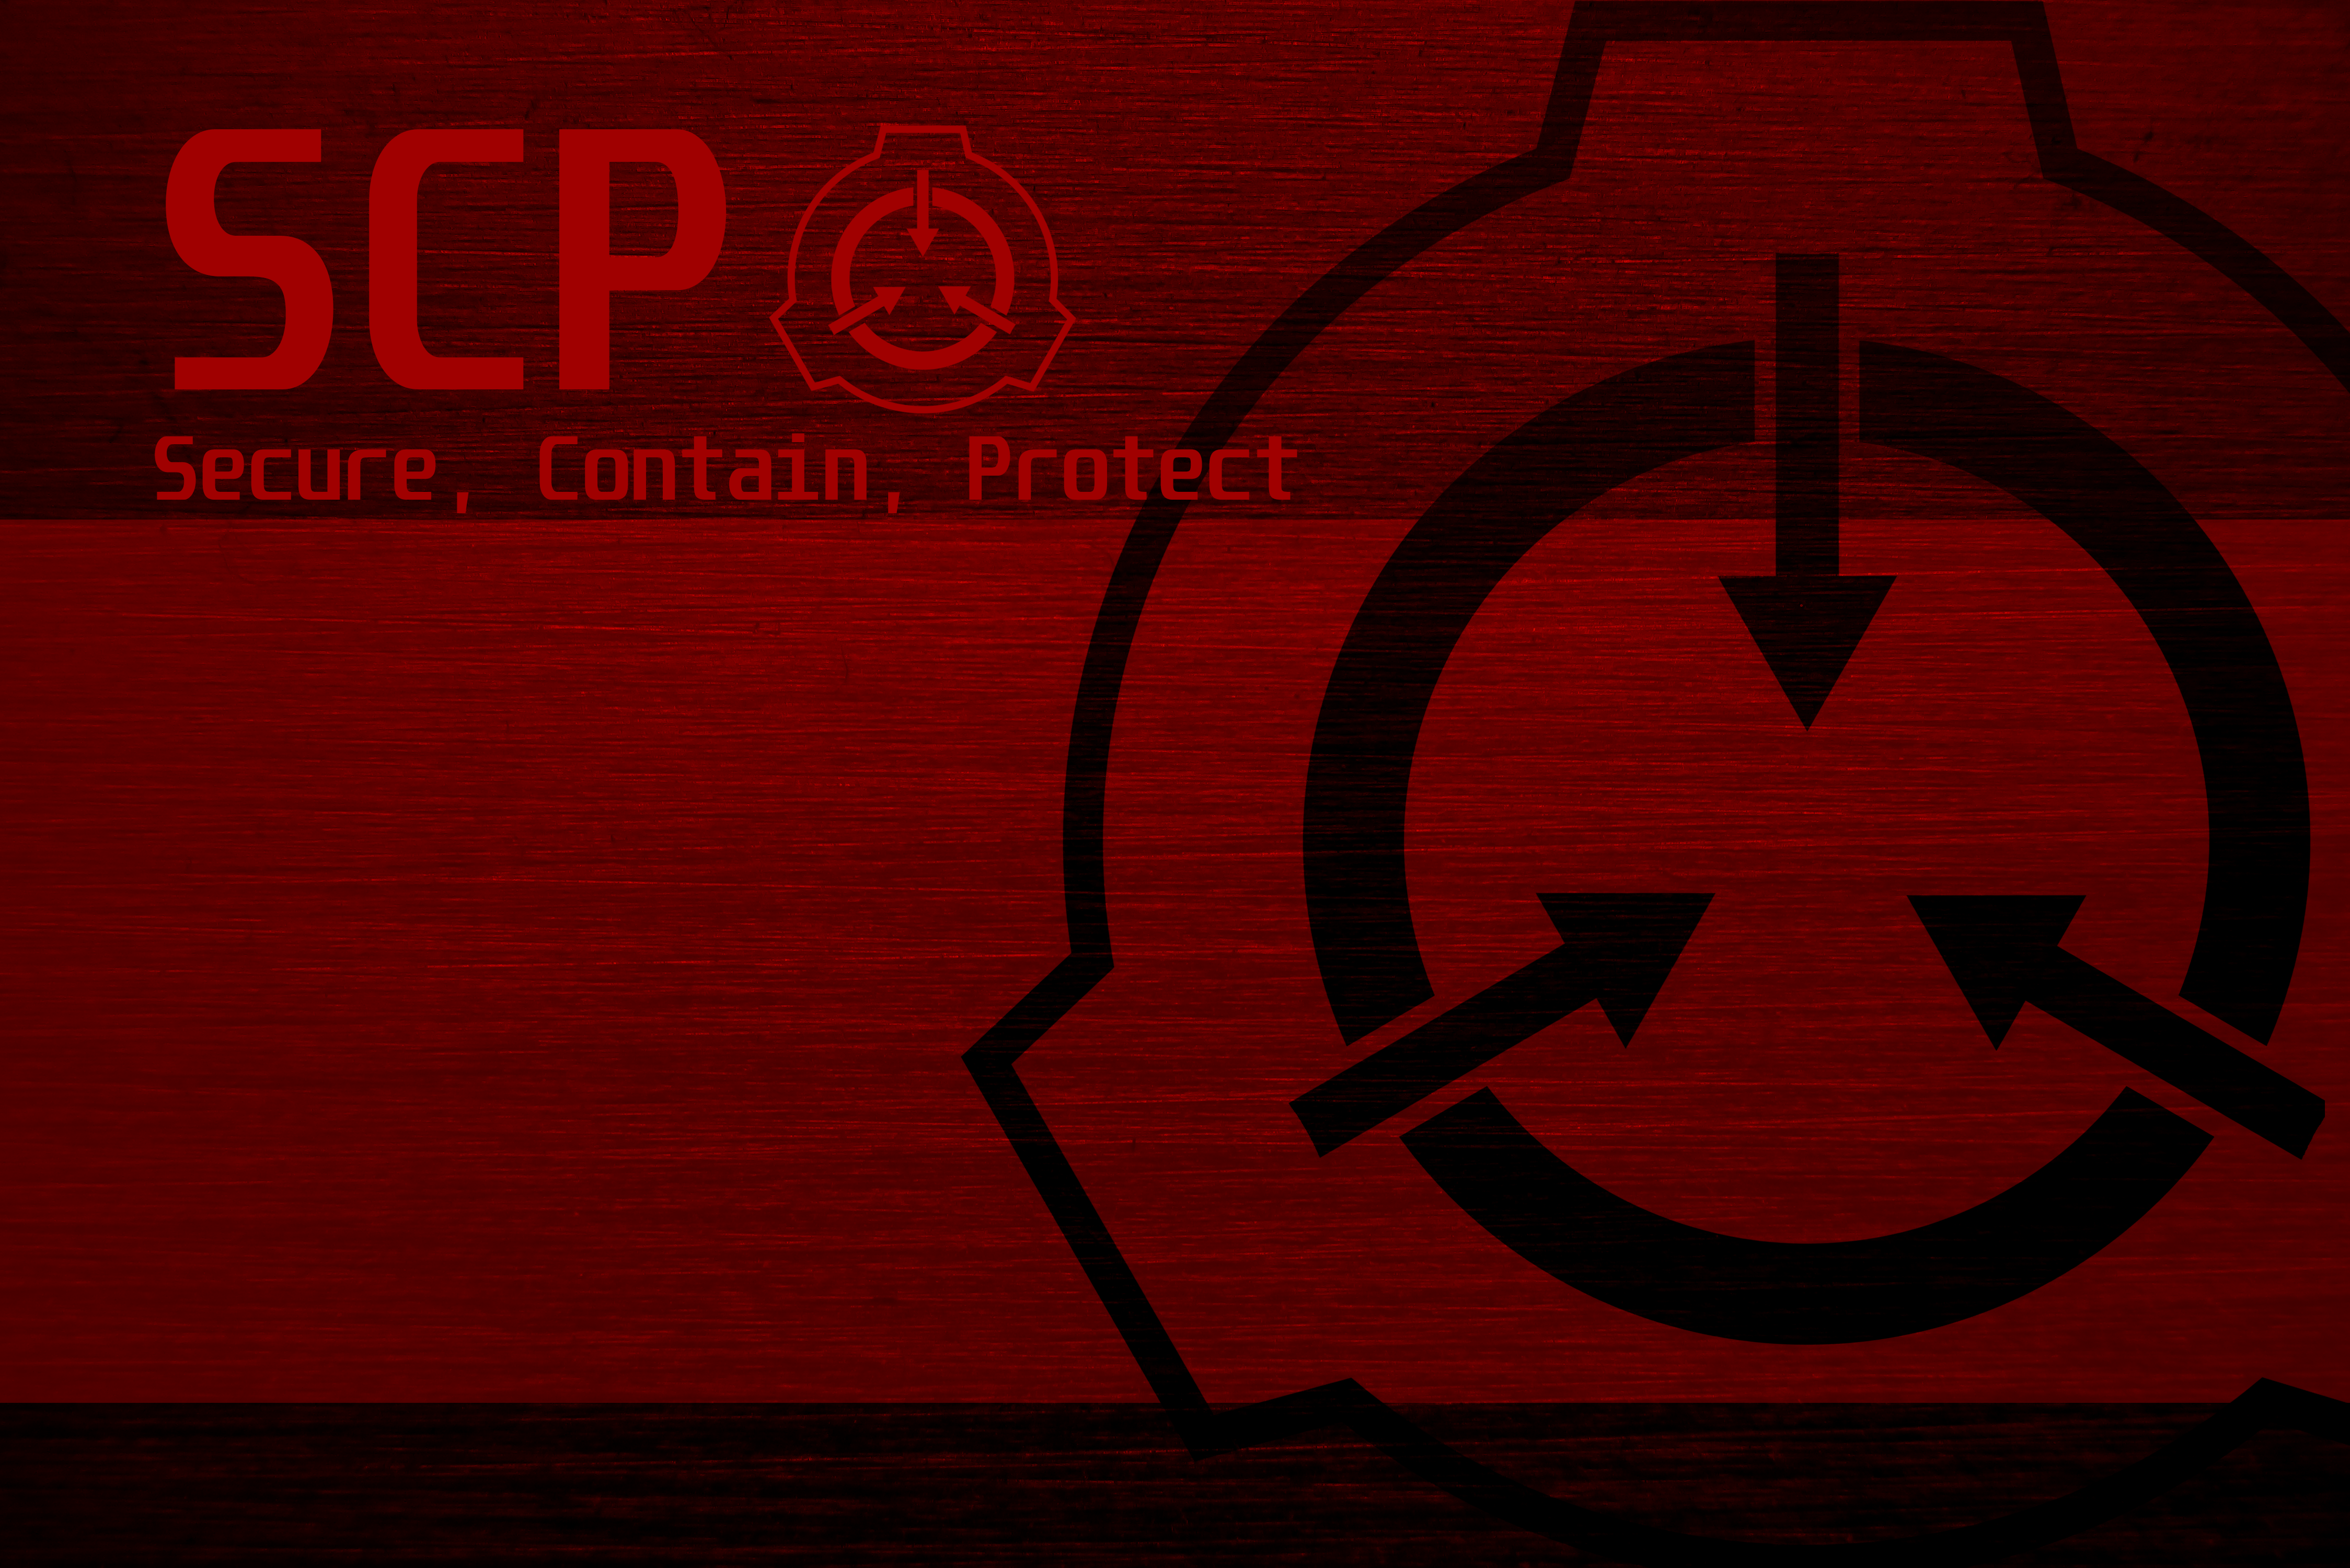 SCP-Ccard-MetalRed-01.png